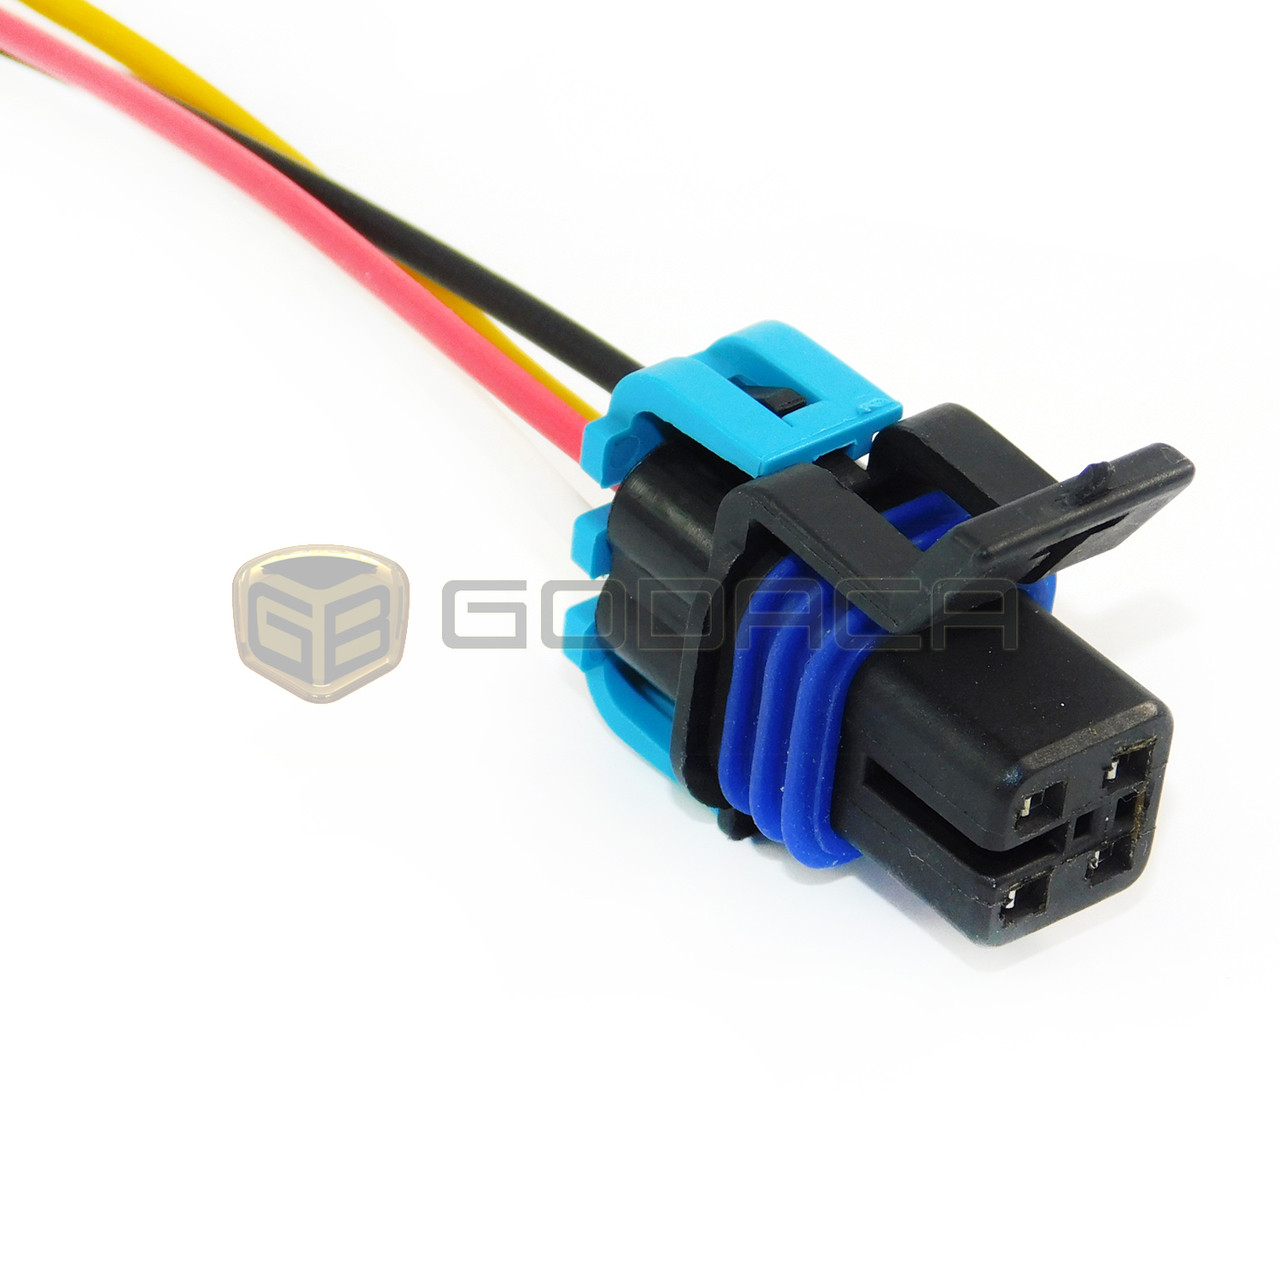 connector for fuel pump 4-way female wiring harness gm chevrolet oxygen  12160482 - godaca, llc